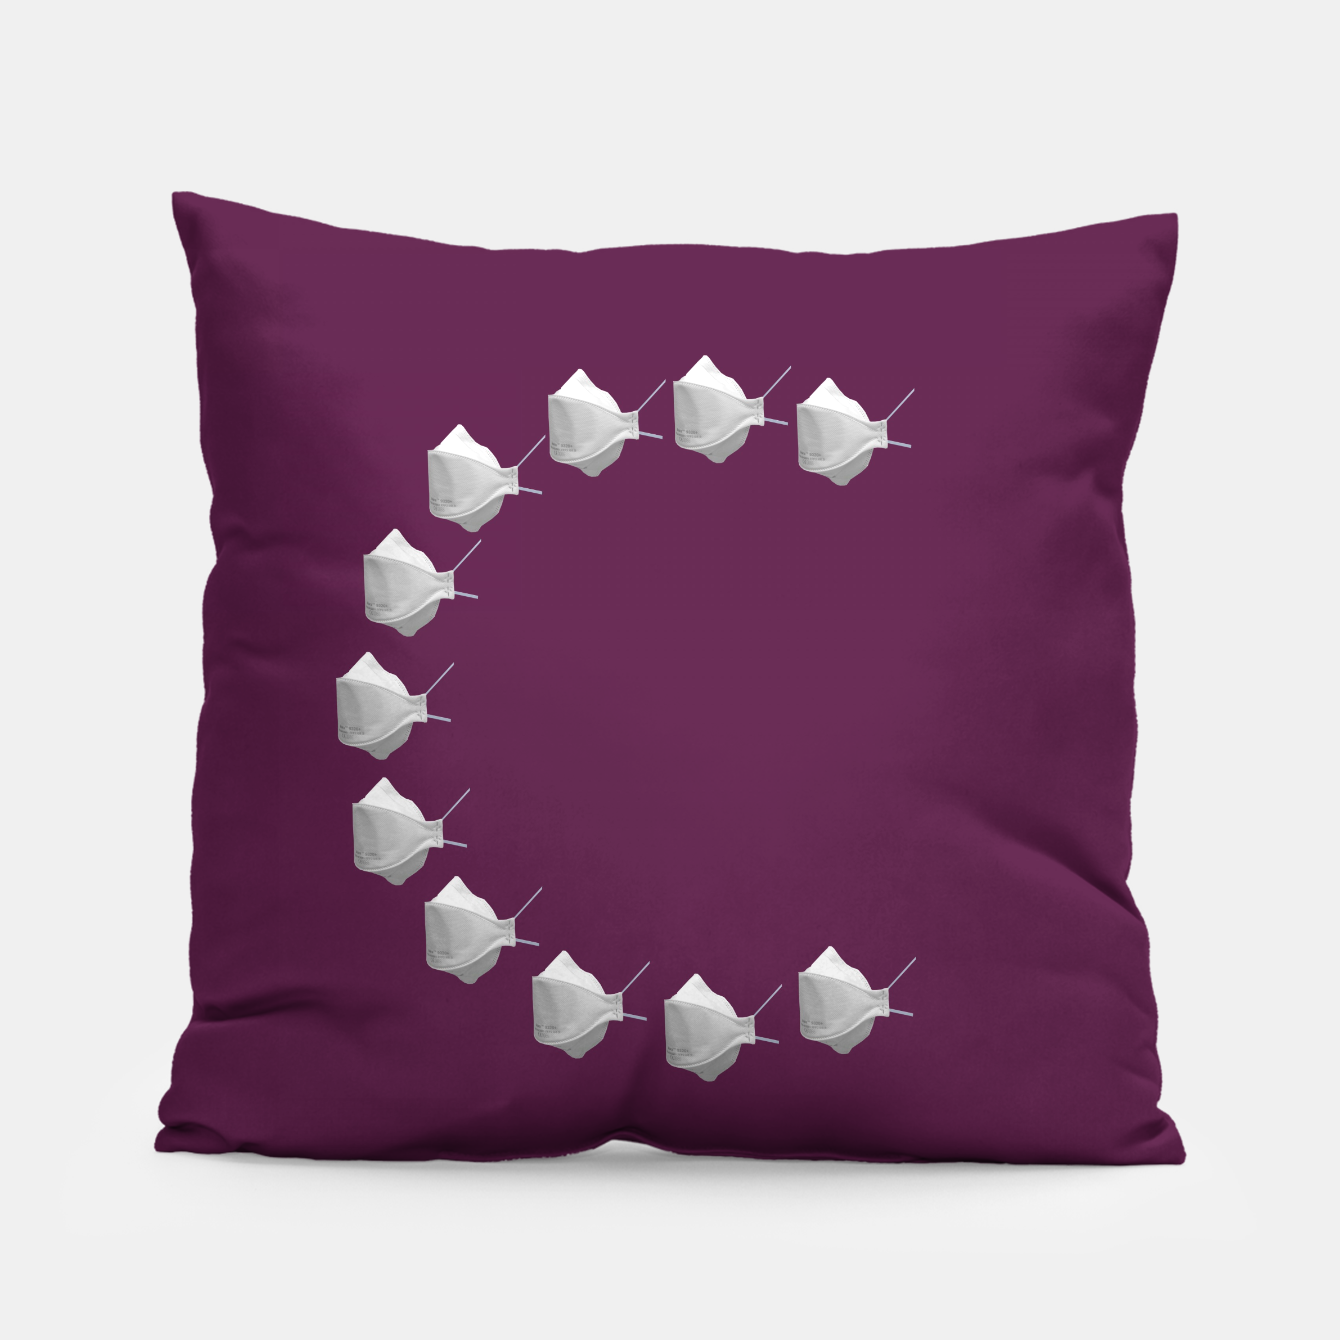 Foto C Mouth Mask Pillow - Live Heroes